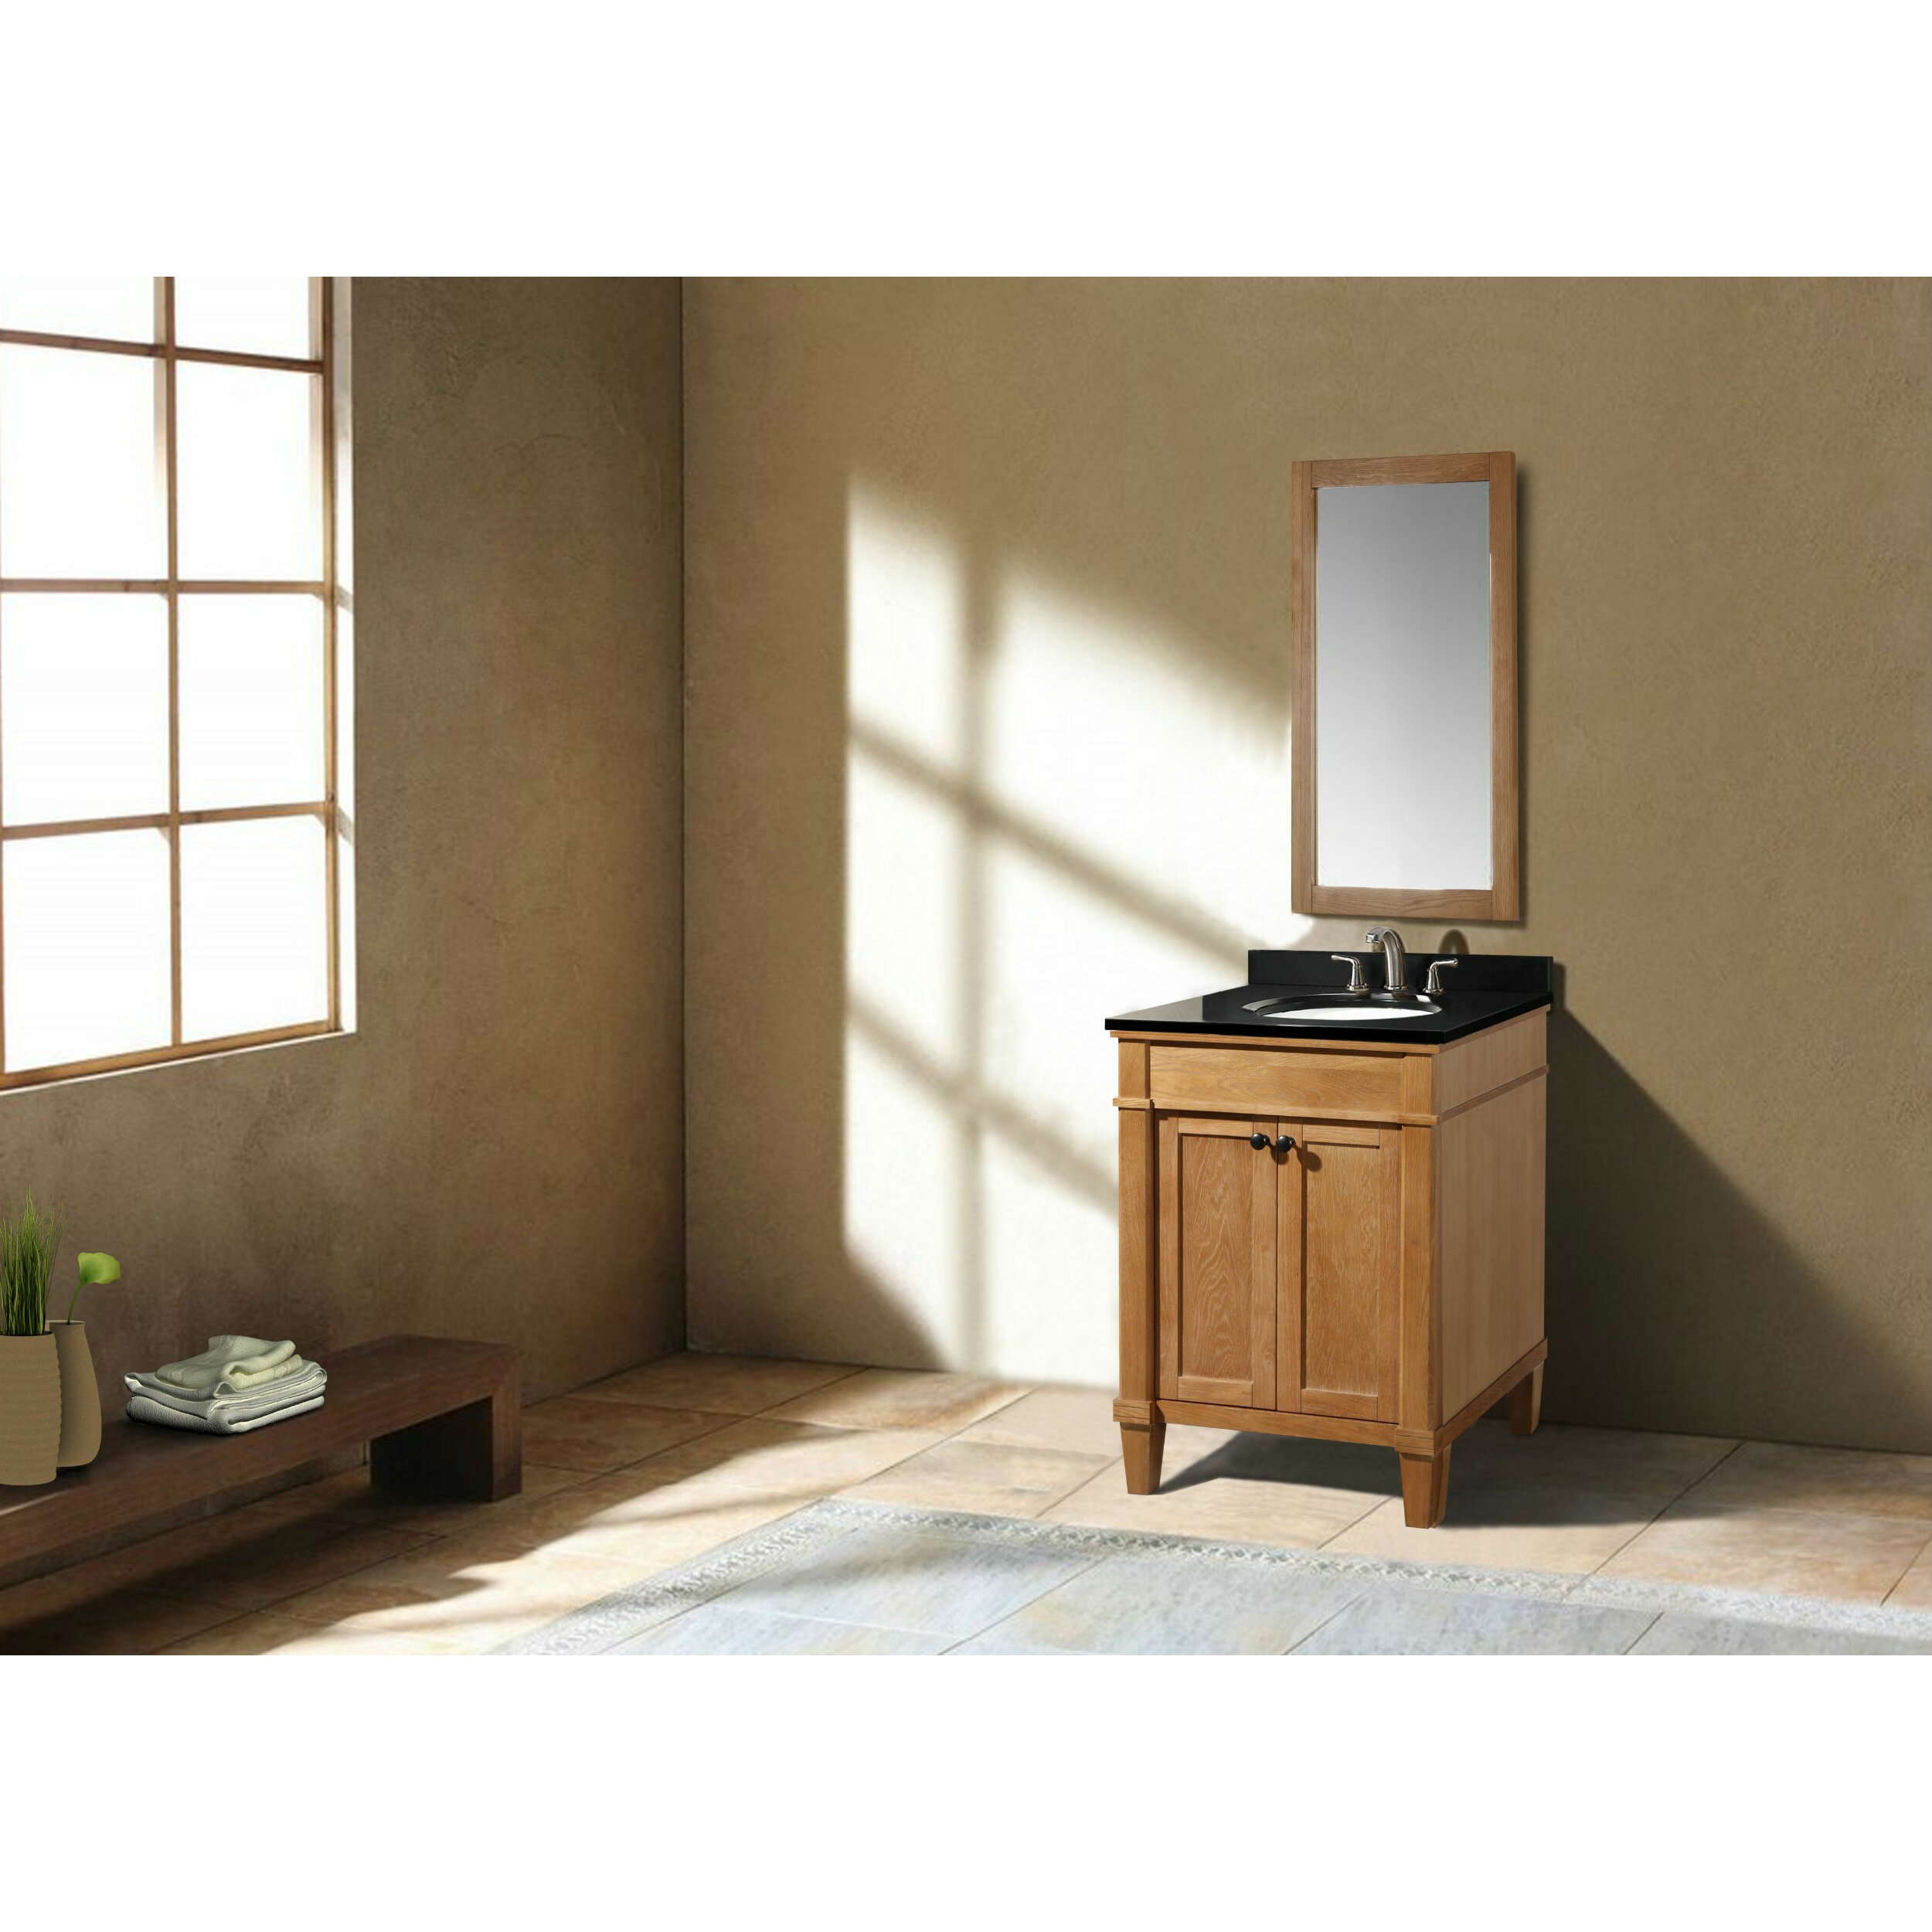 legion furniture 25 single bathroom vanity set reviews wayfair - Wayfair Bathroom Vanity